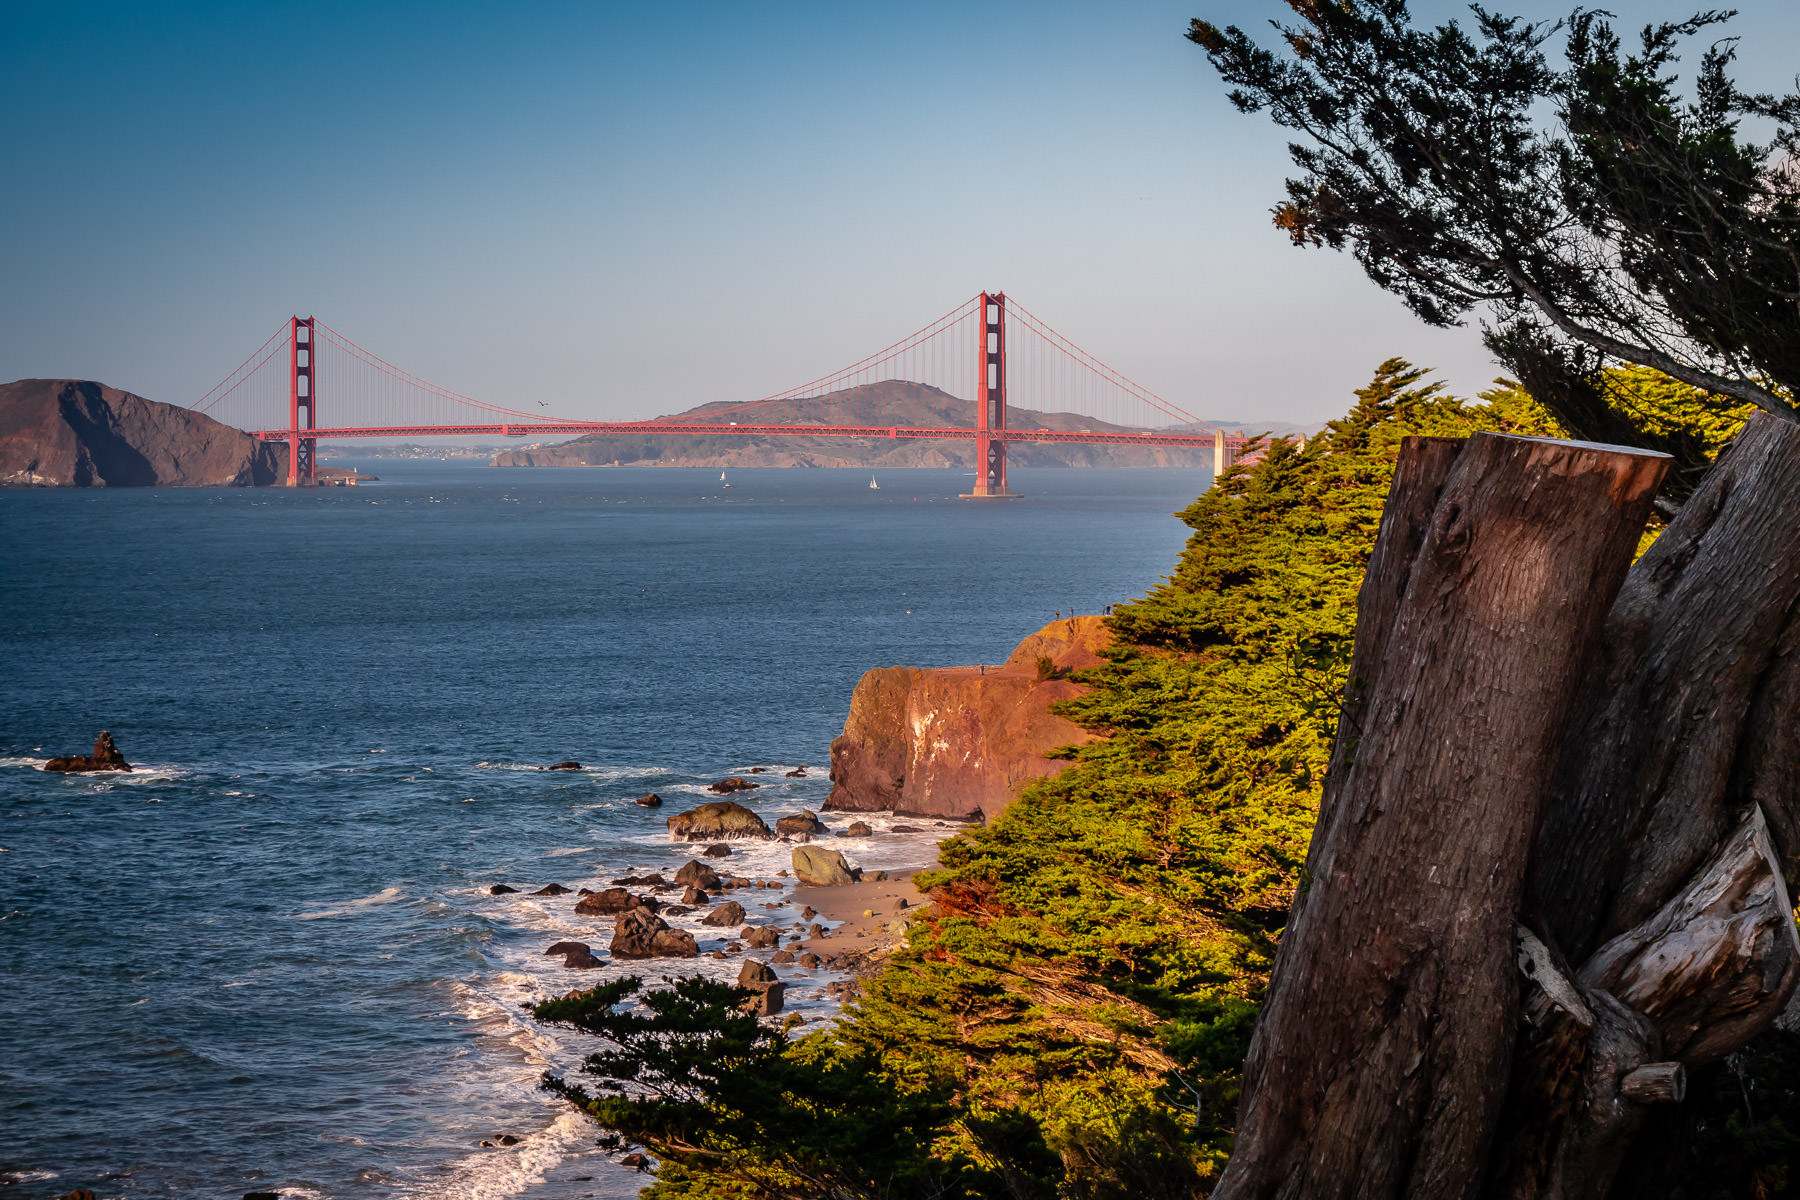 San Francisco's iconic Golden Gate Bridge, as seen from nearby Sea Cliff.